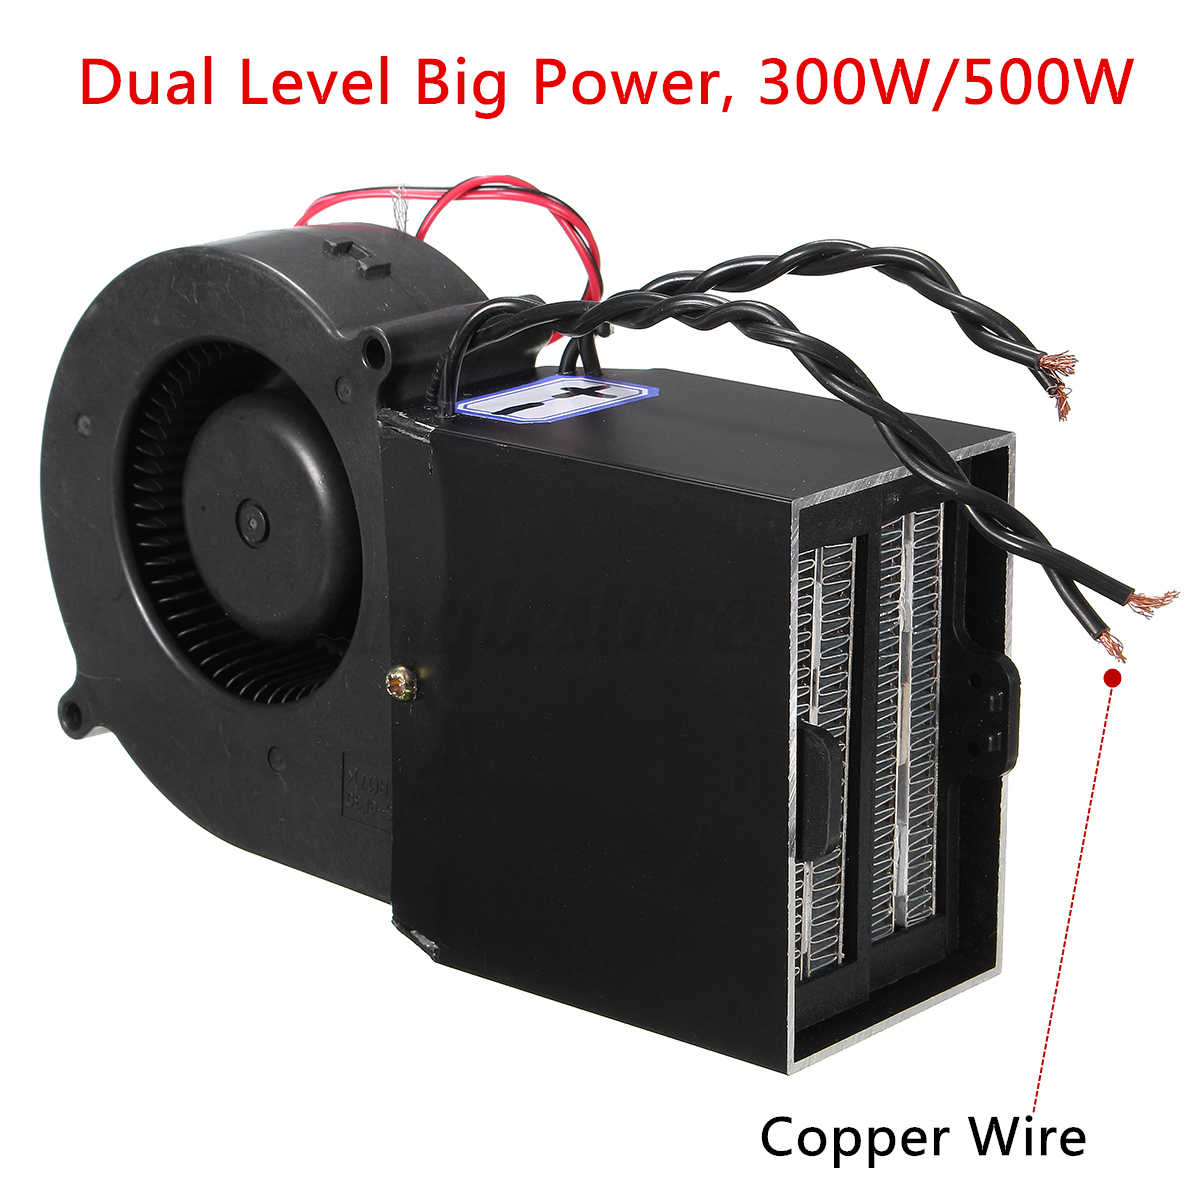 500w ptc safe car adjustable heating heater hot fan defroster demister dc 12v ebay. Black Bedroom Furniture Sets. Home Design Ideas